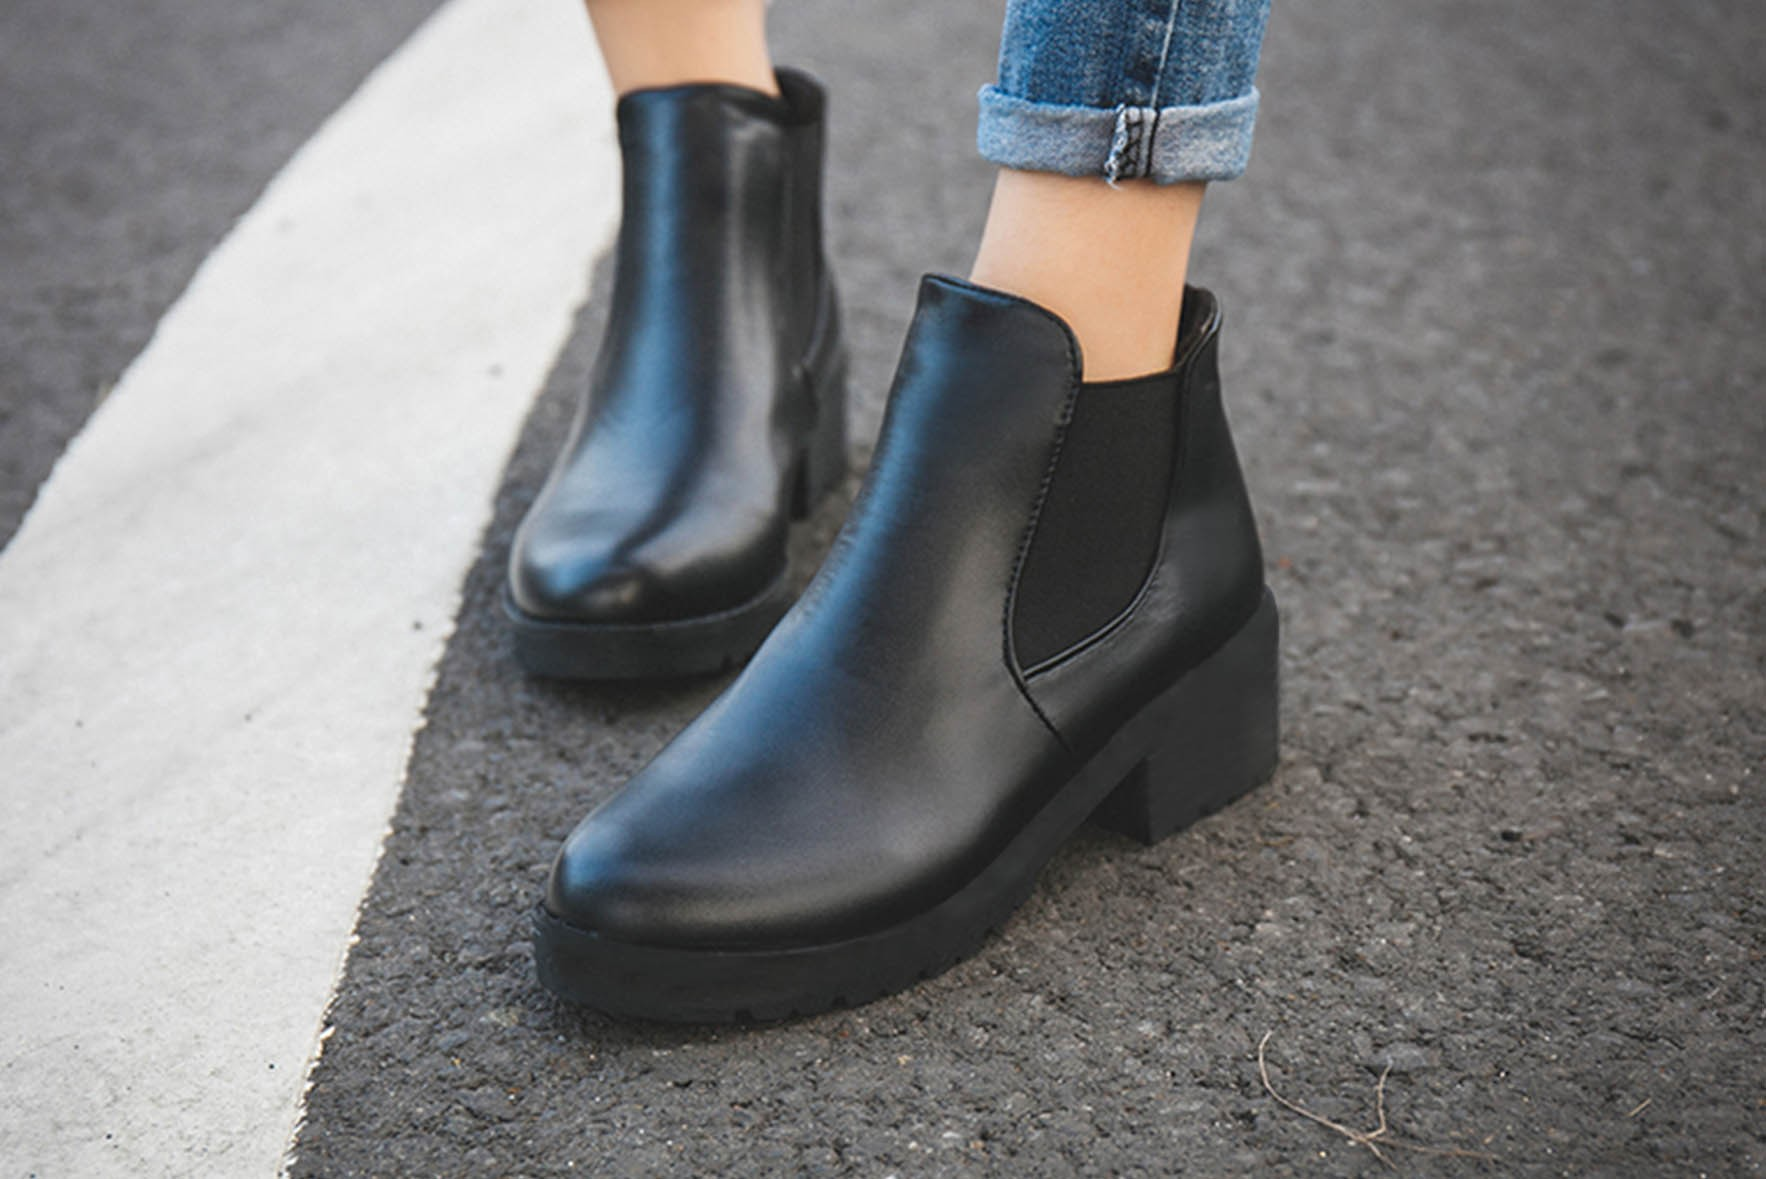 New Hot Style Fashion Women Boots Black